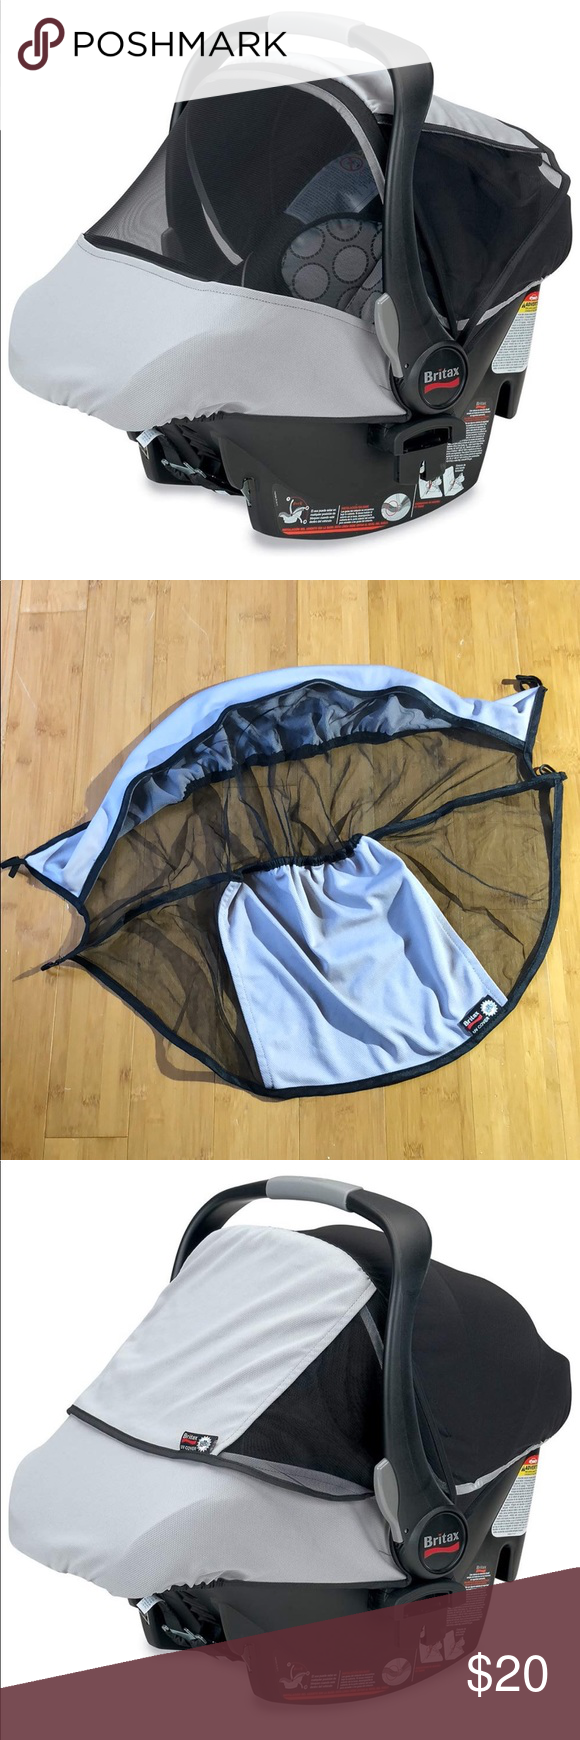 Astonishing Britax Infant Car Seat Sun And Bug Cover Excellent Condition Ocoug Best Dining Table And Chair Ideas Images Ocougorg